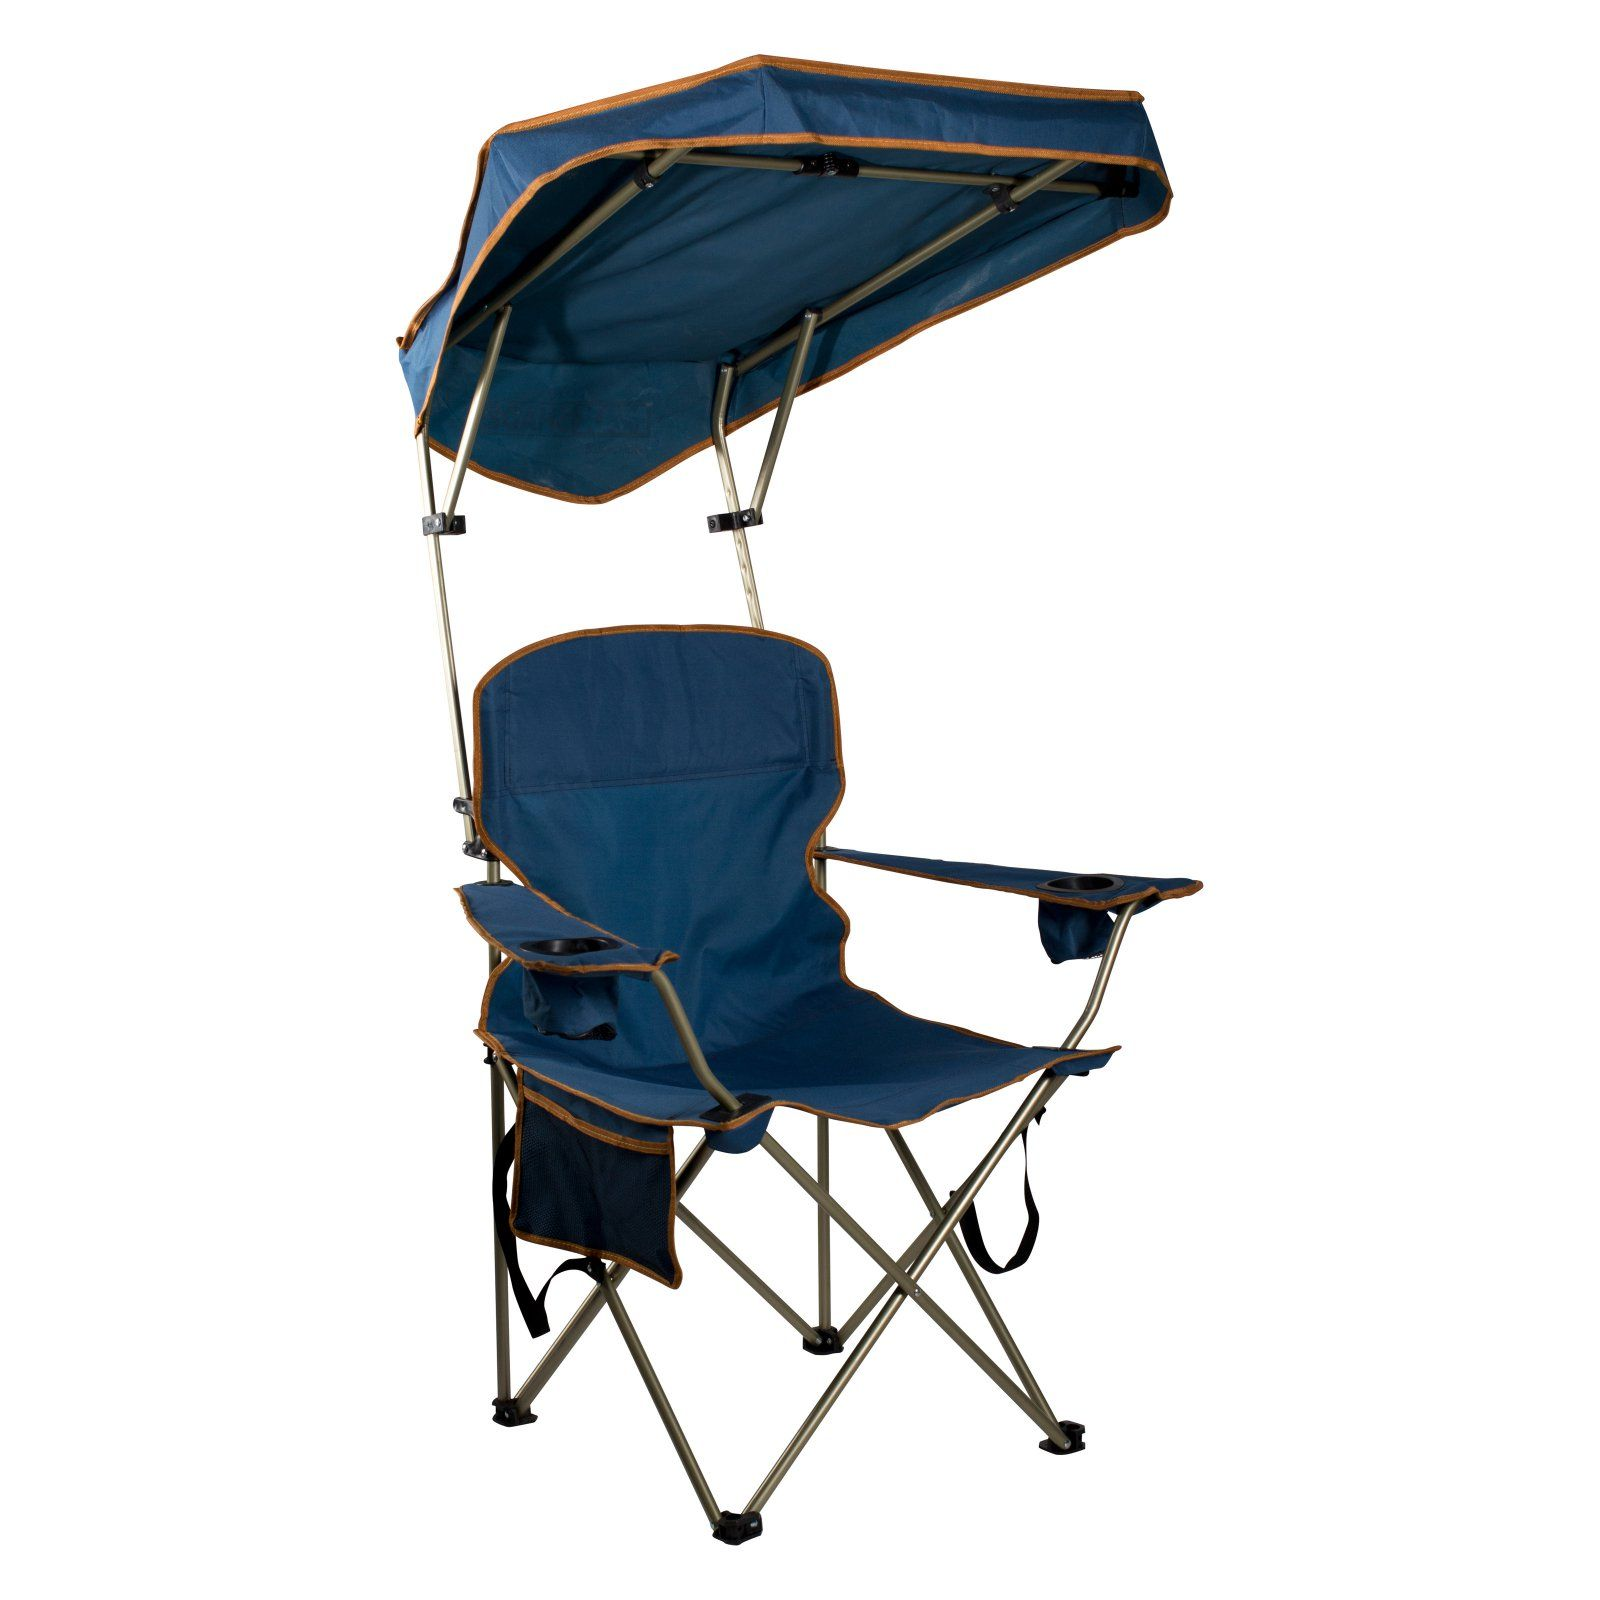 Outdoor Quik Shade MAX Navy Camp Chair with Canopy